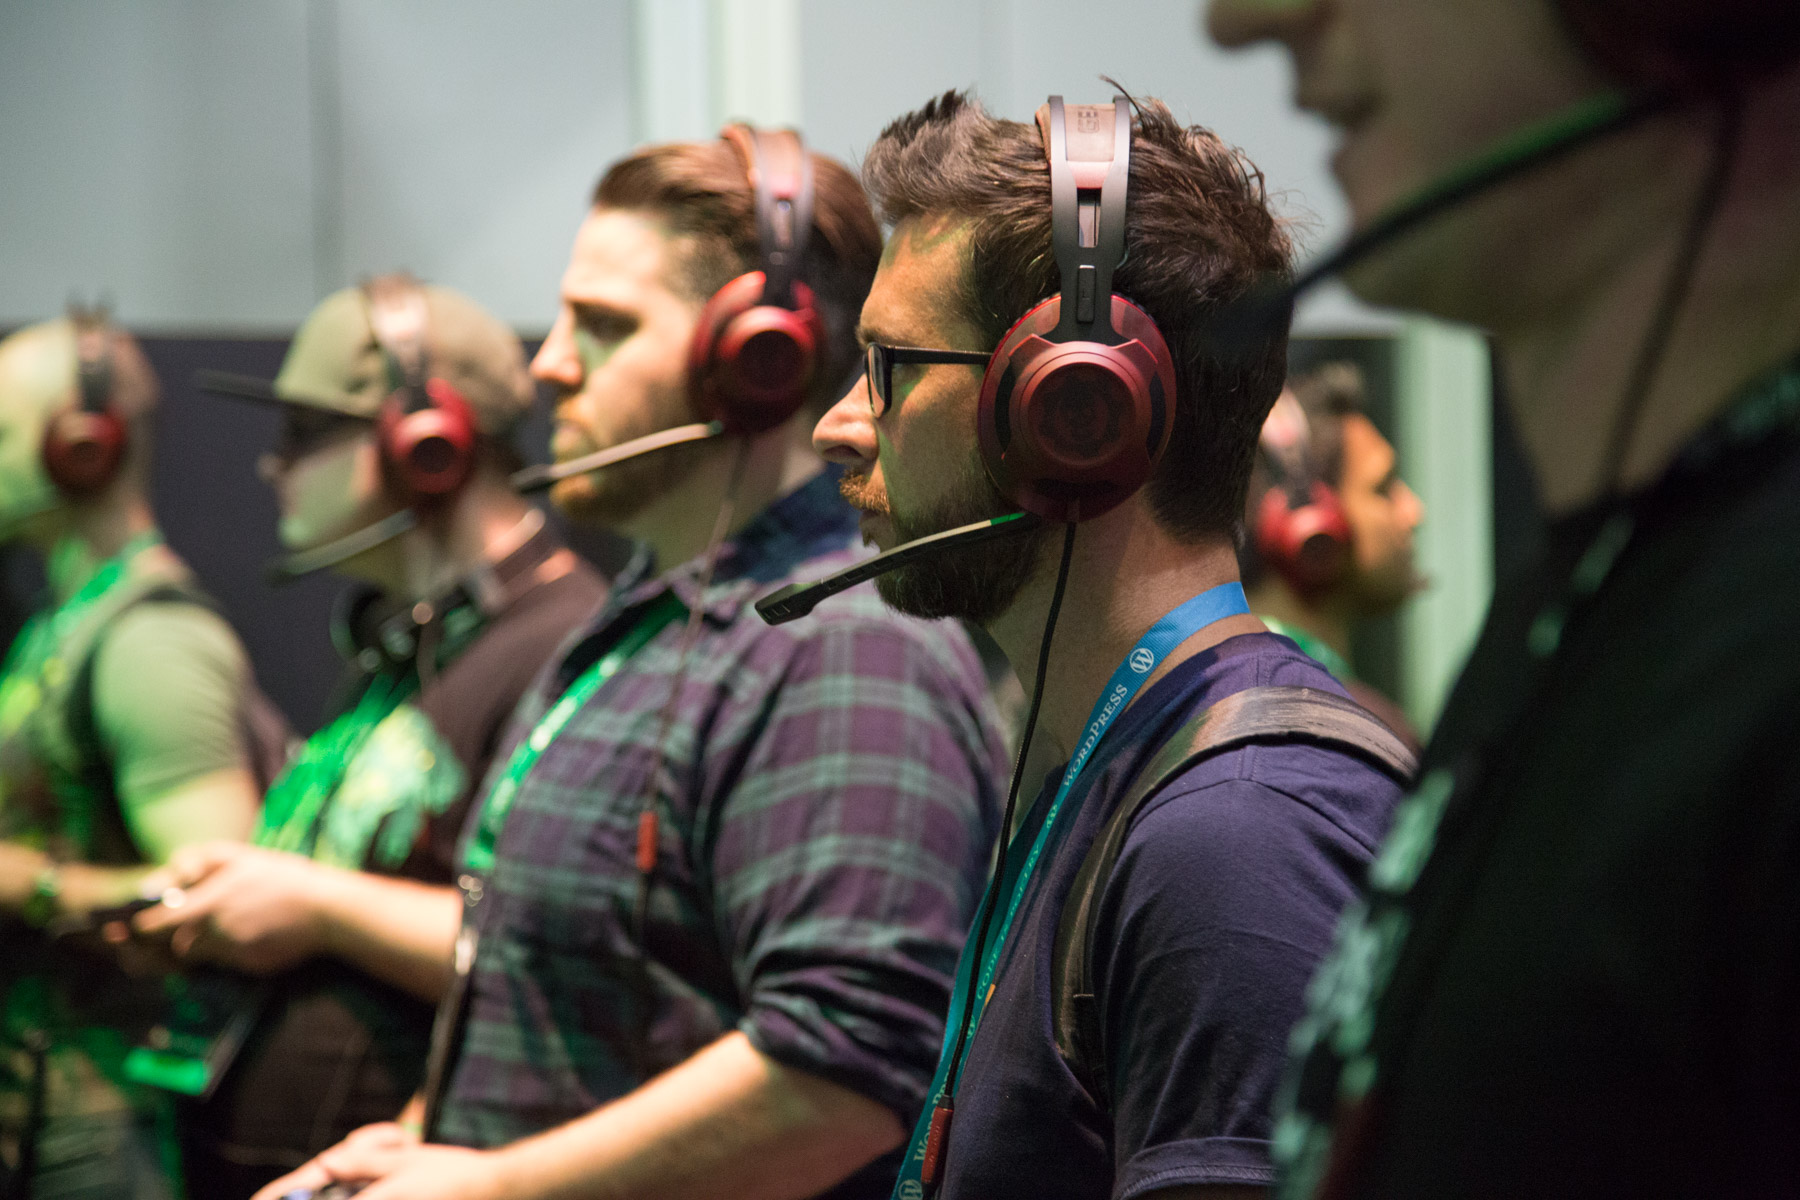 Image 2 - Superfans get early access to EB Expo and are some of the first in Australia to play Gear of War 4